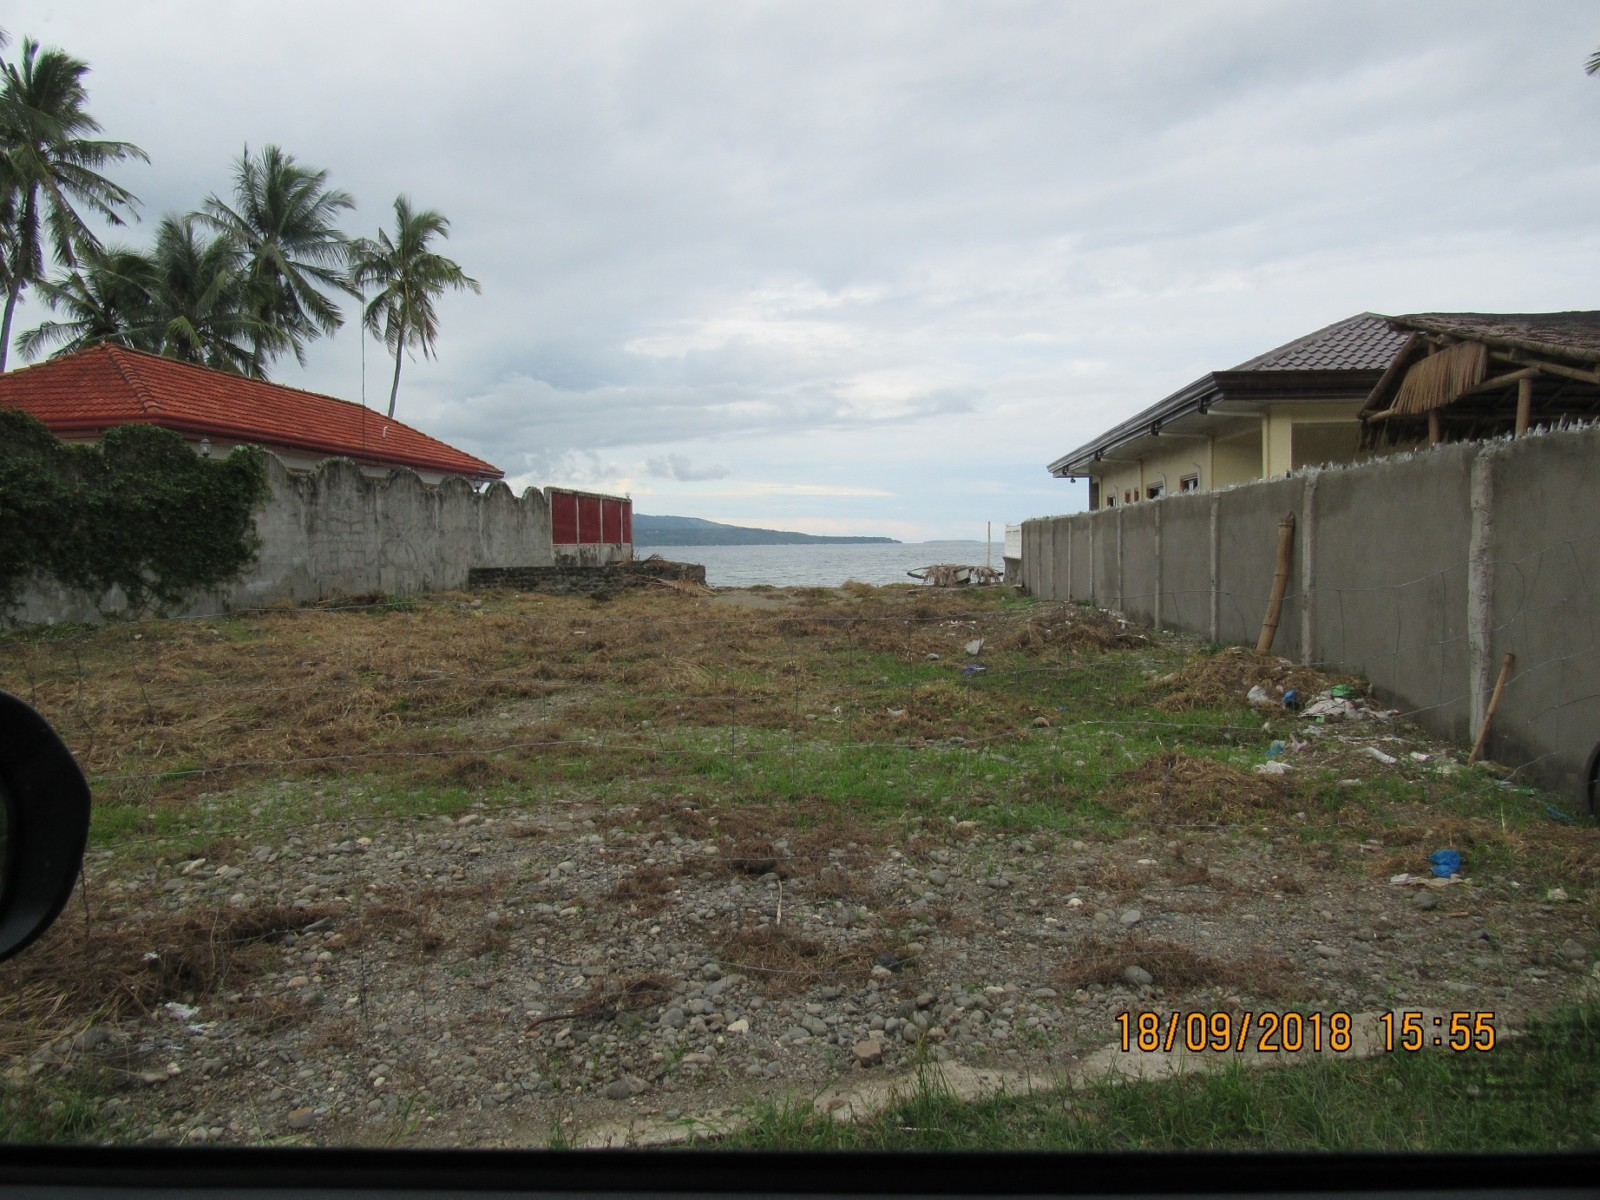 Exclusive Beach Lot For Sale in Negros Oriental ID#14695